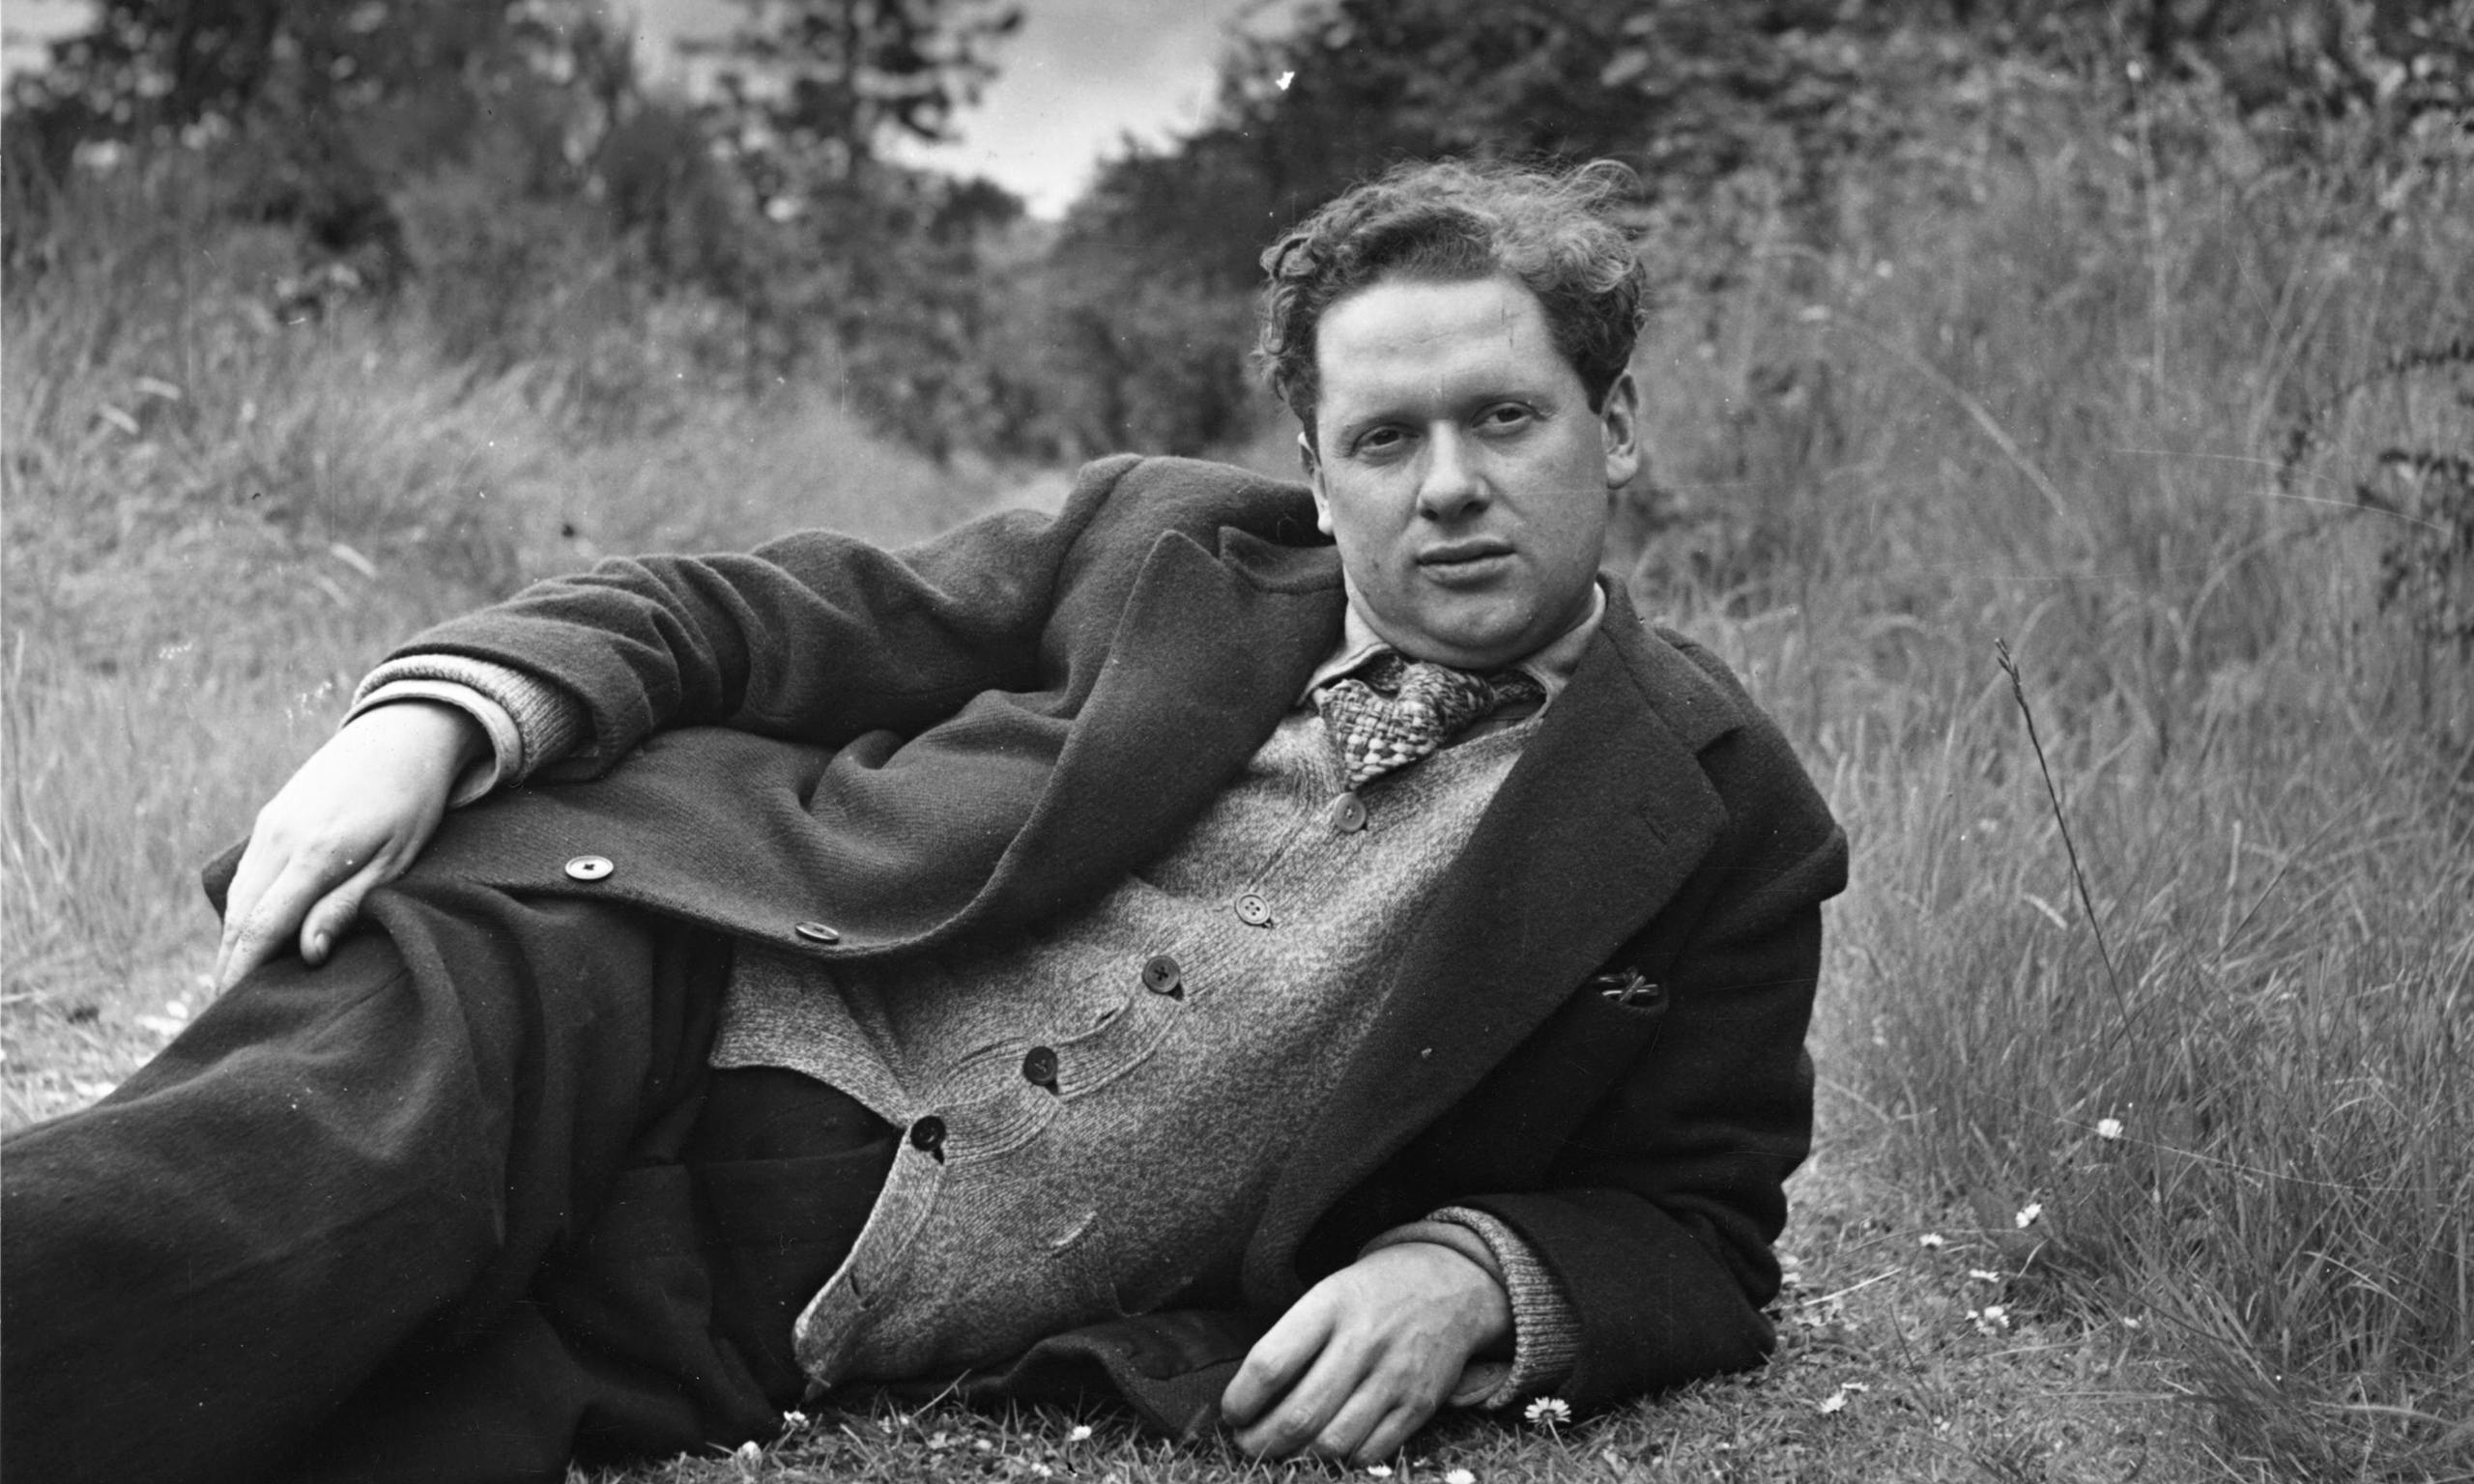 a biography of dylan marlais thomas a writer Born october 27, 1914 in swansea, south wales dylan marlais thomas was a  popular poet and writer of the earlier part of the twentieth century and whose.